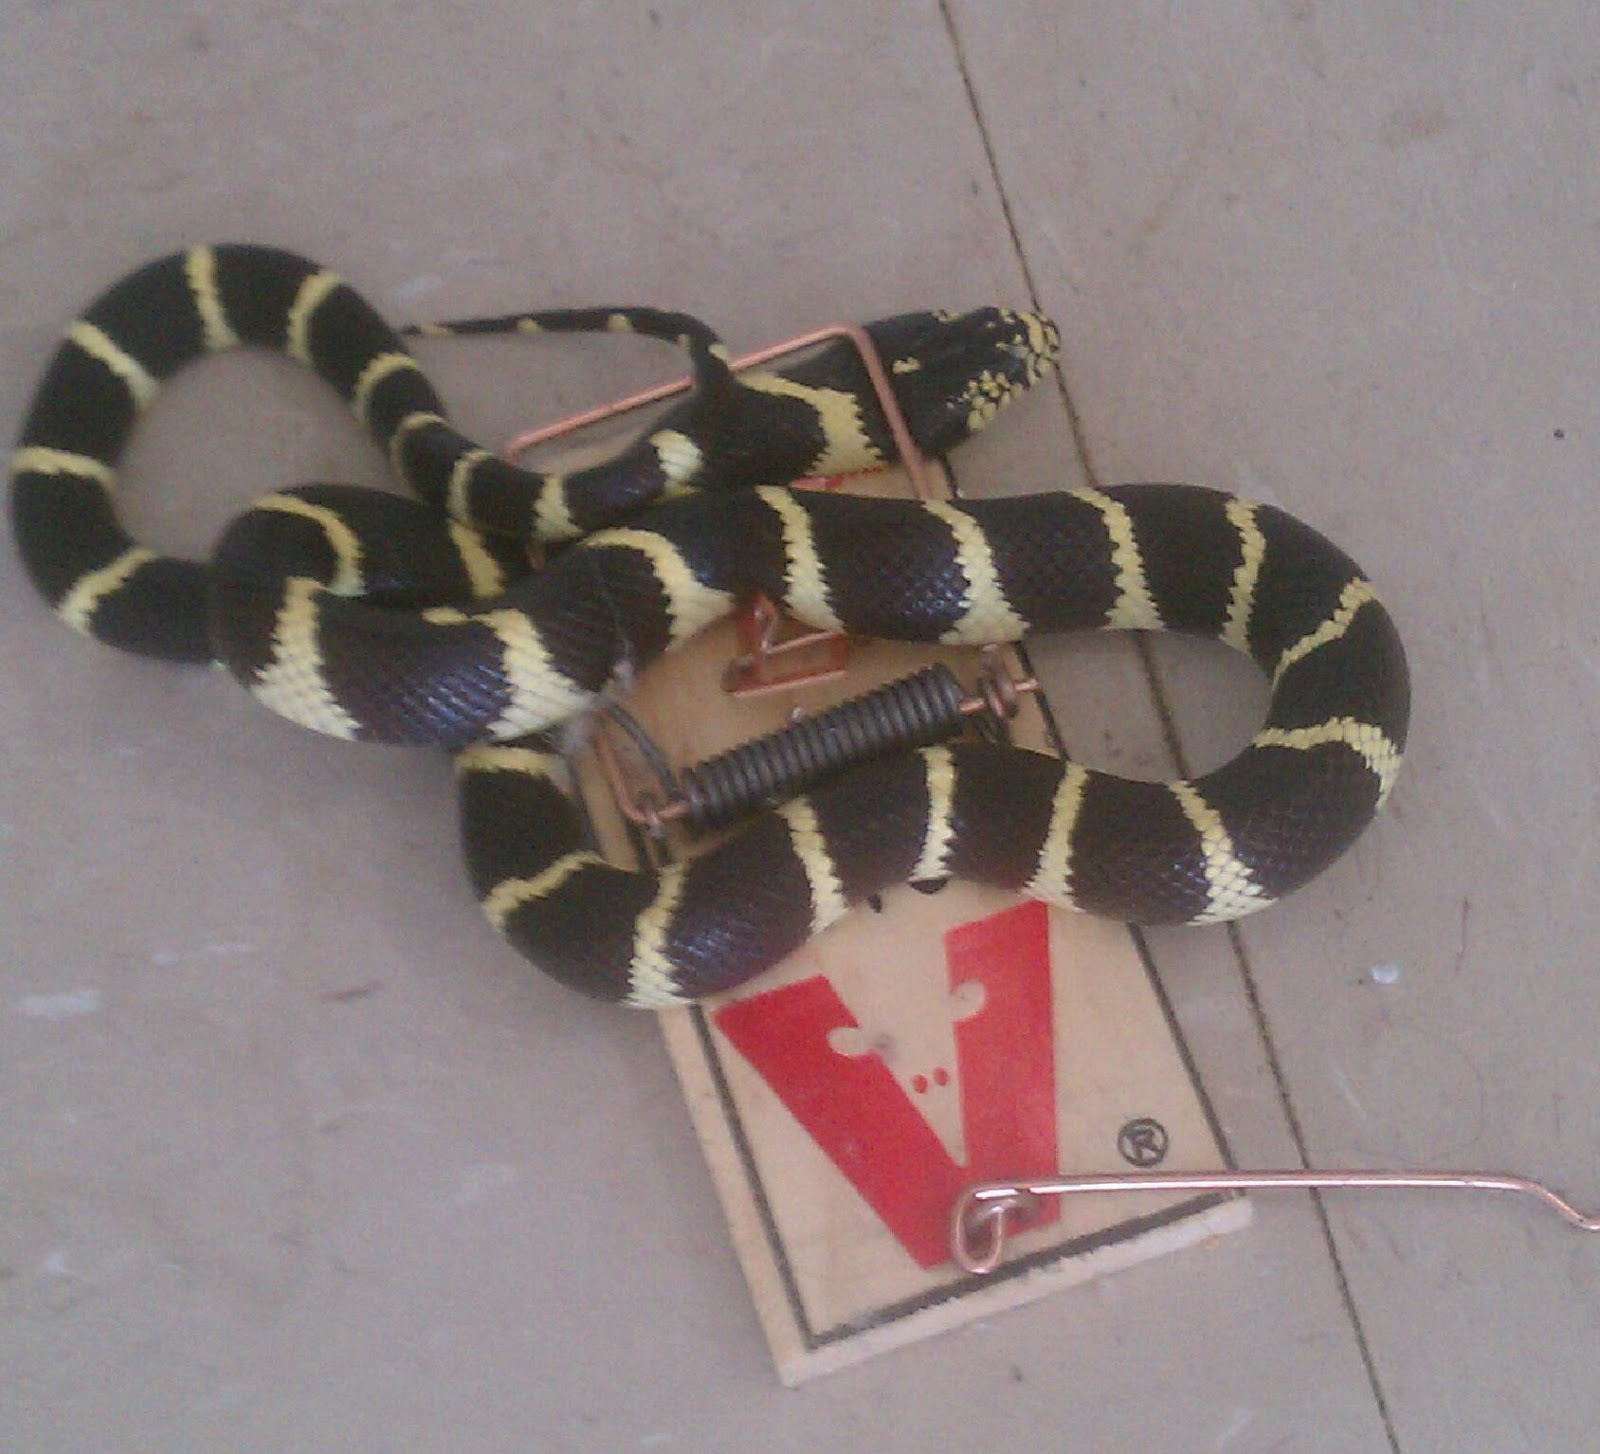 Winemaker s journal how do you release a live snake from a mousetrap